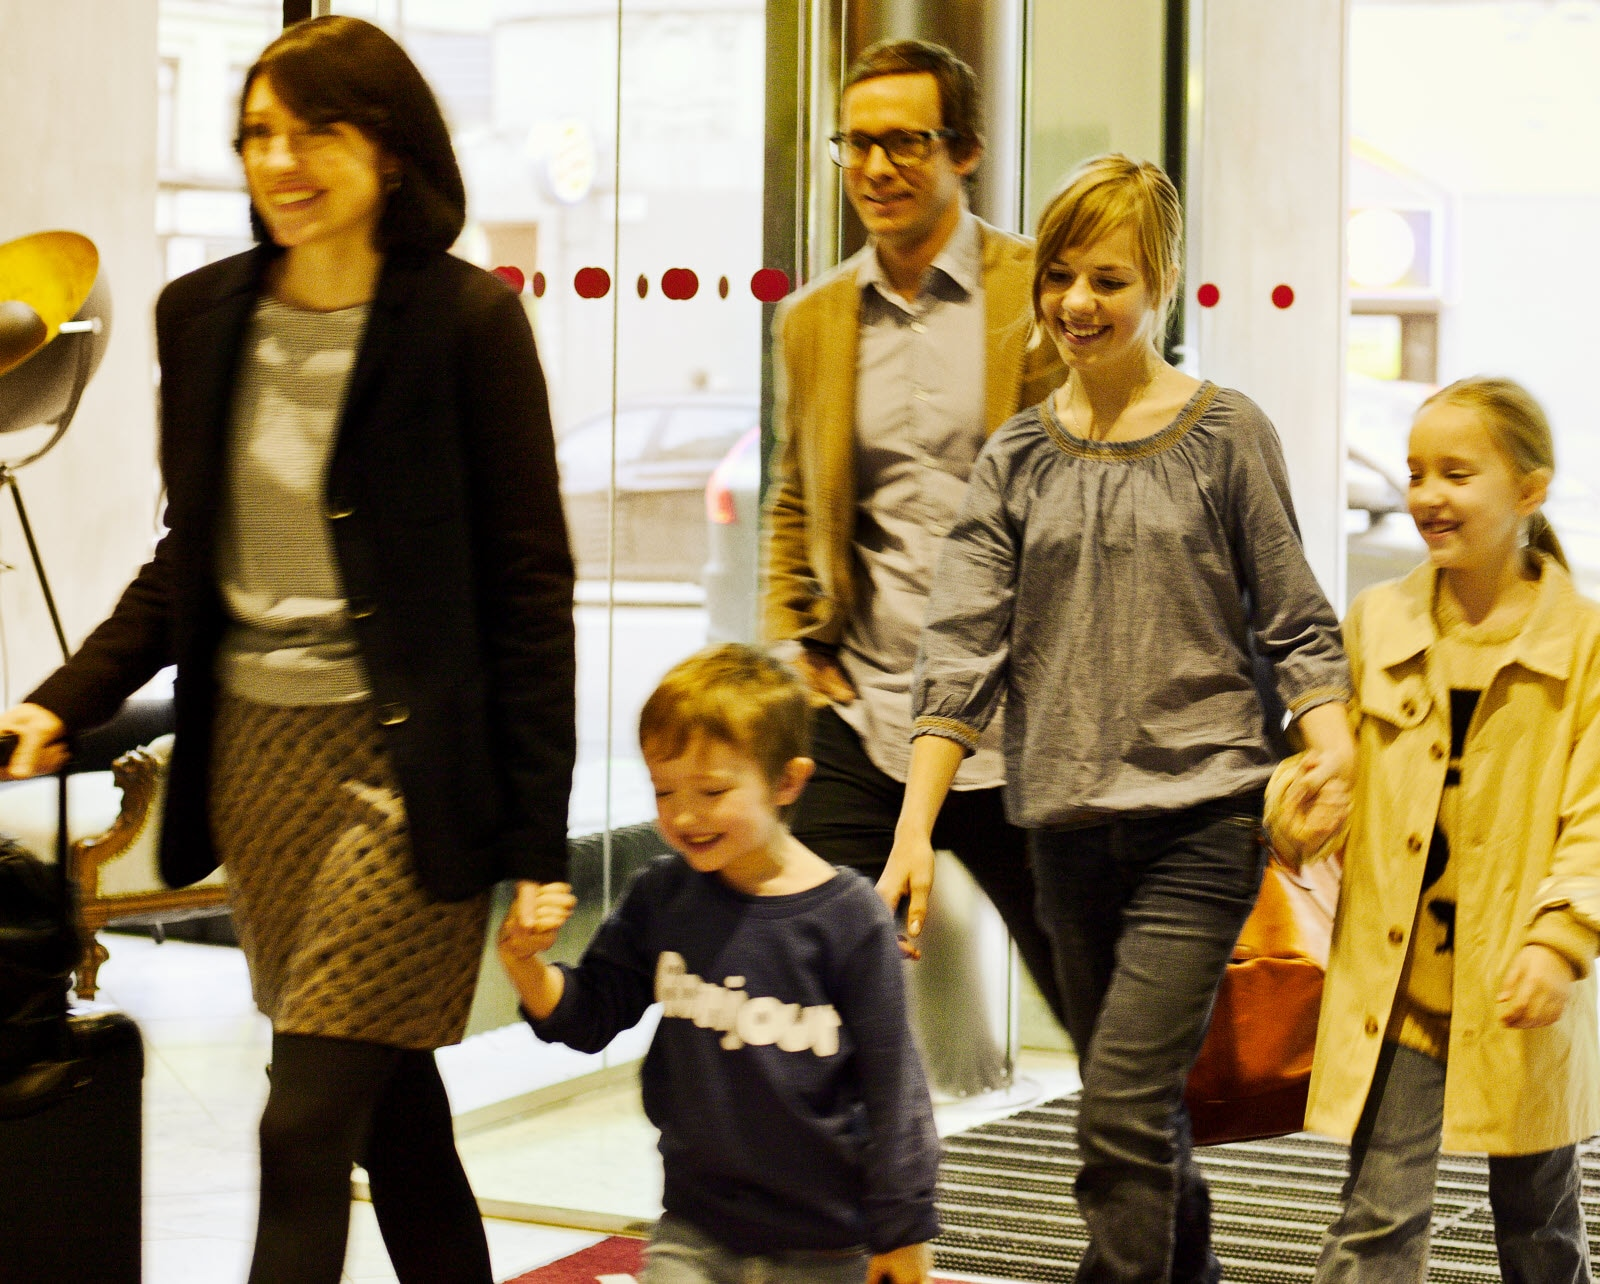 Family entering the hotel together through the entrance of the hotel